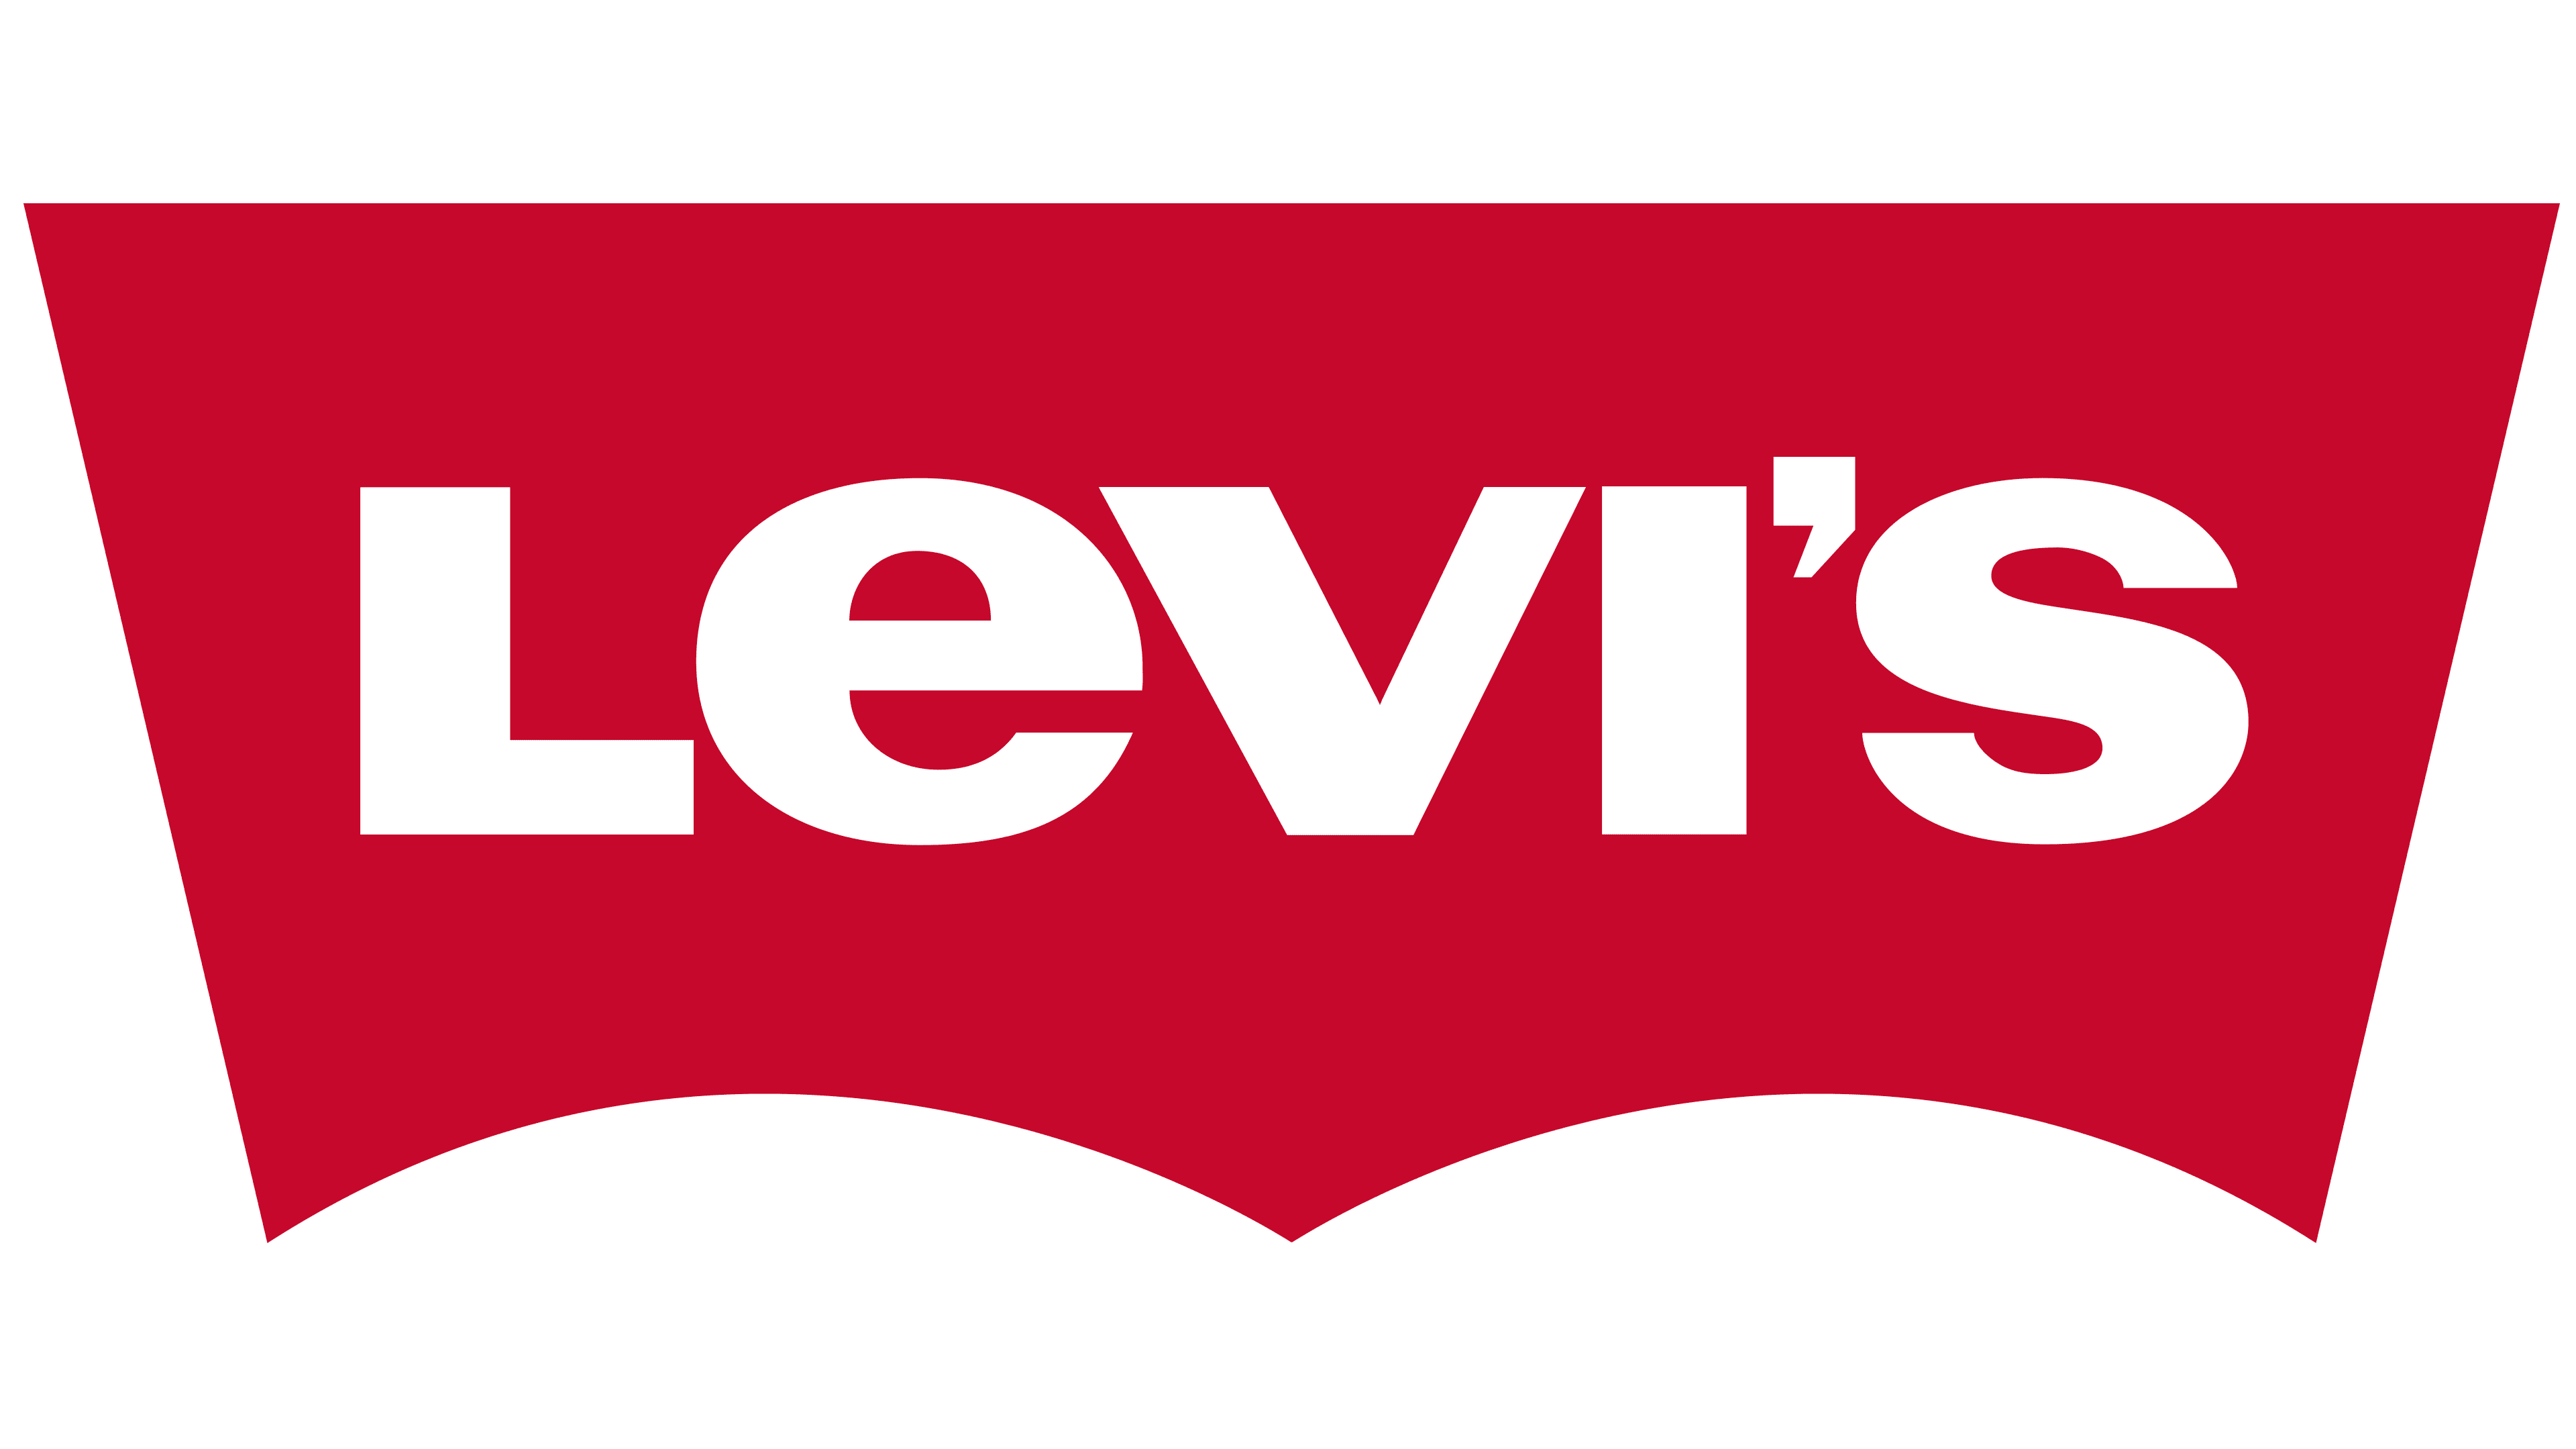 Levis Logo | The most famous brands and company logos in the world